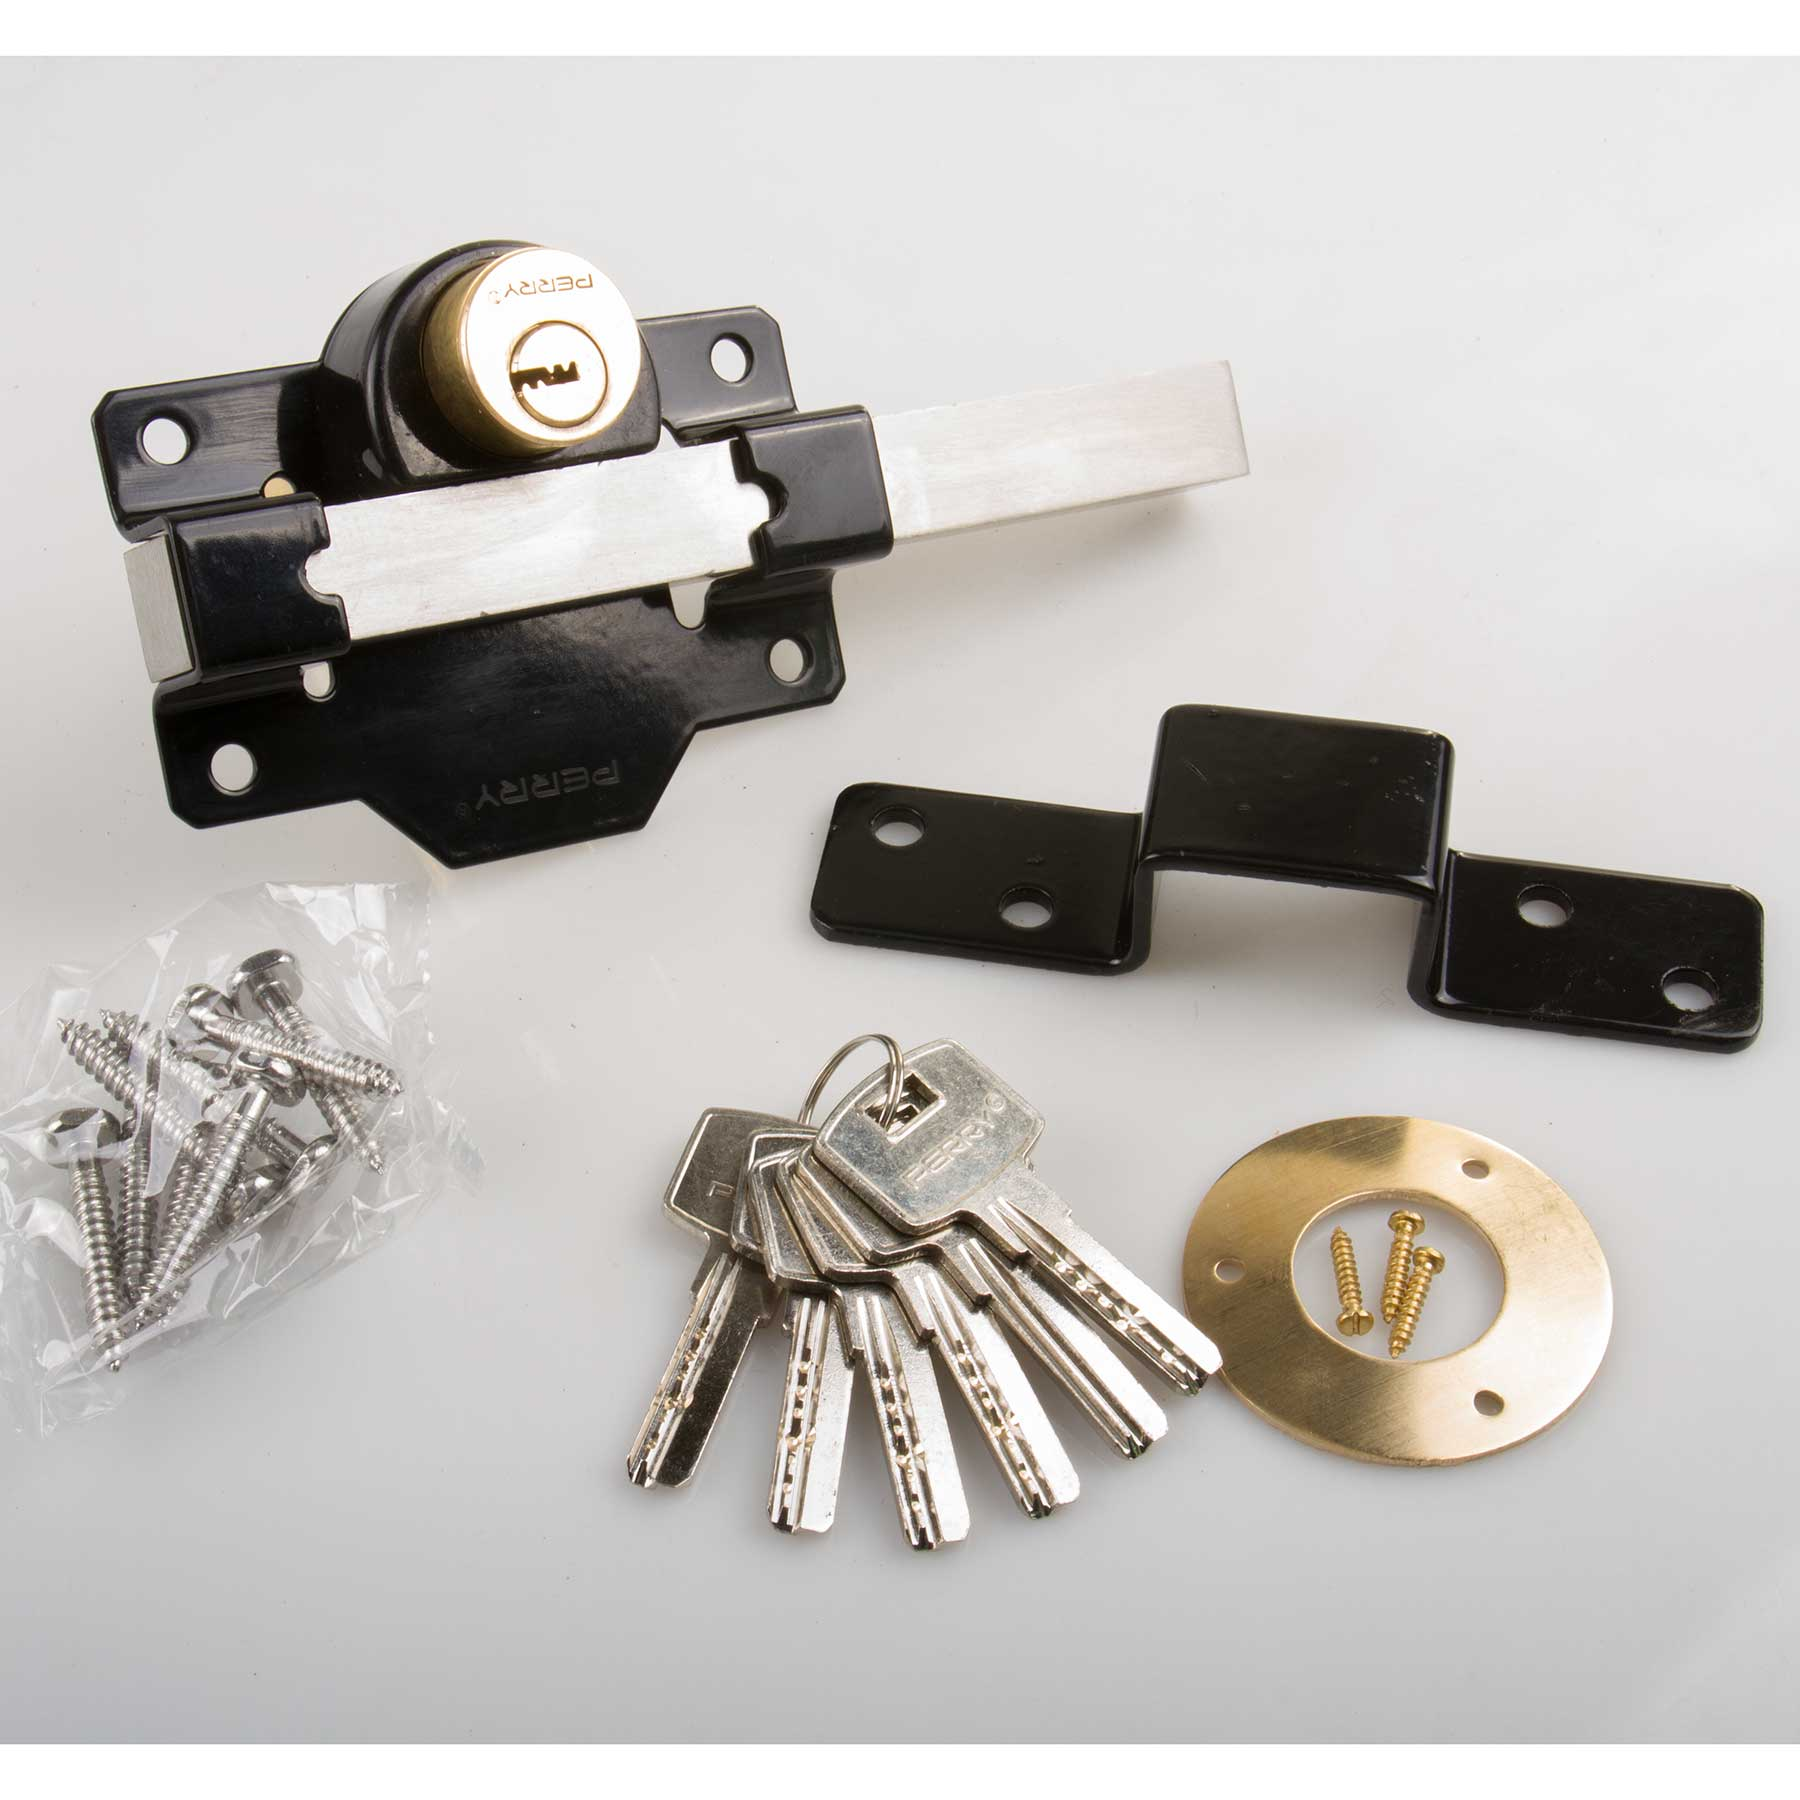 gatedoor perry lockin throw thumbnail a with garden sides shed for both high gate keys sheds garage long products locks lock security handle